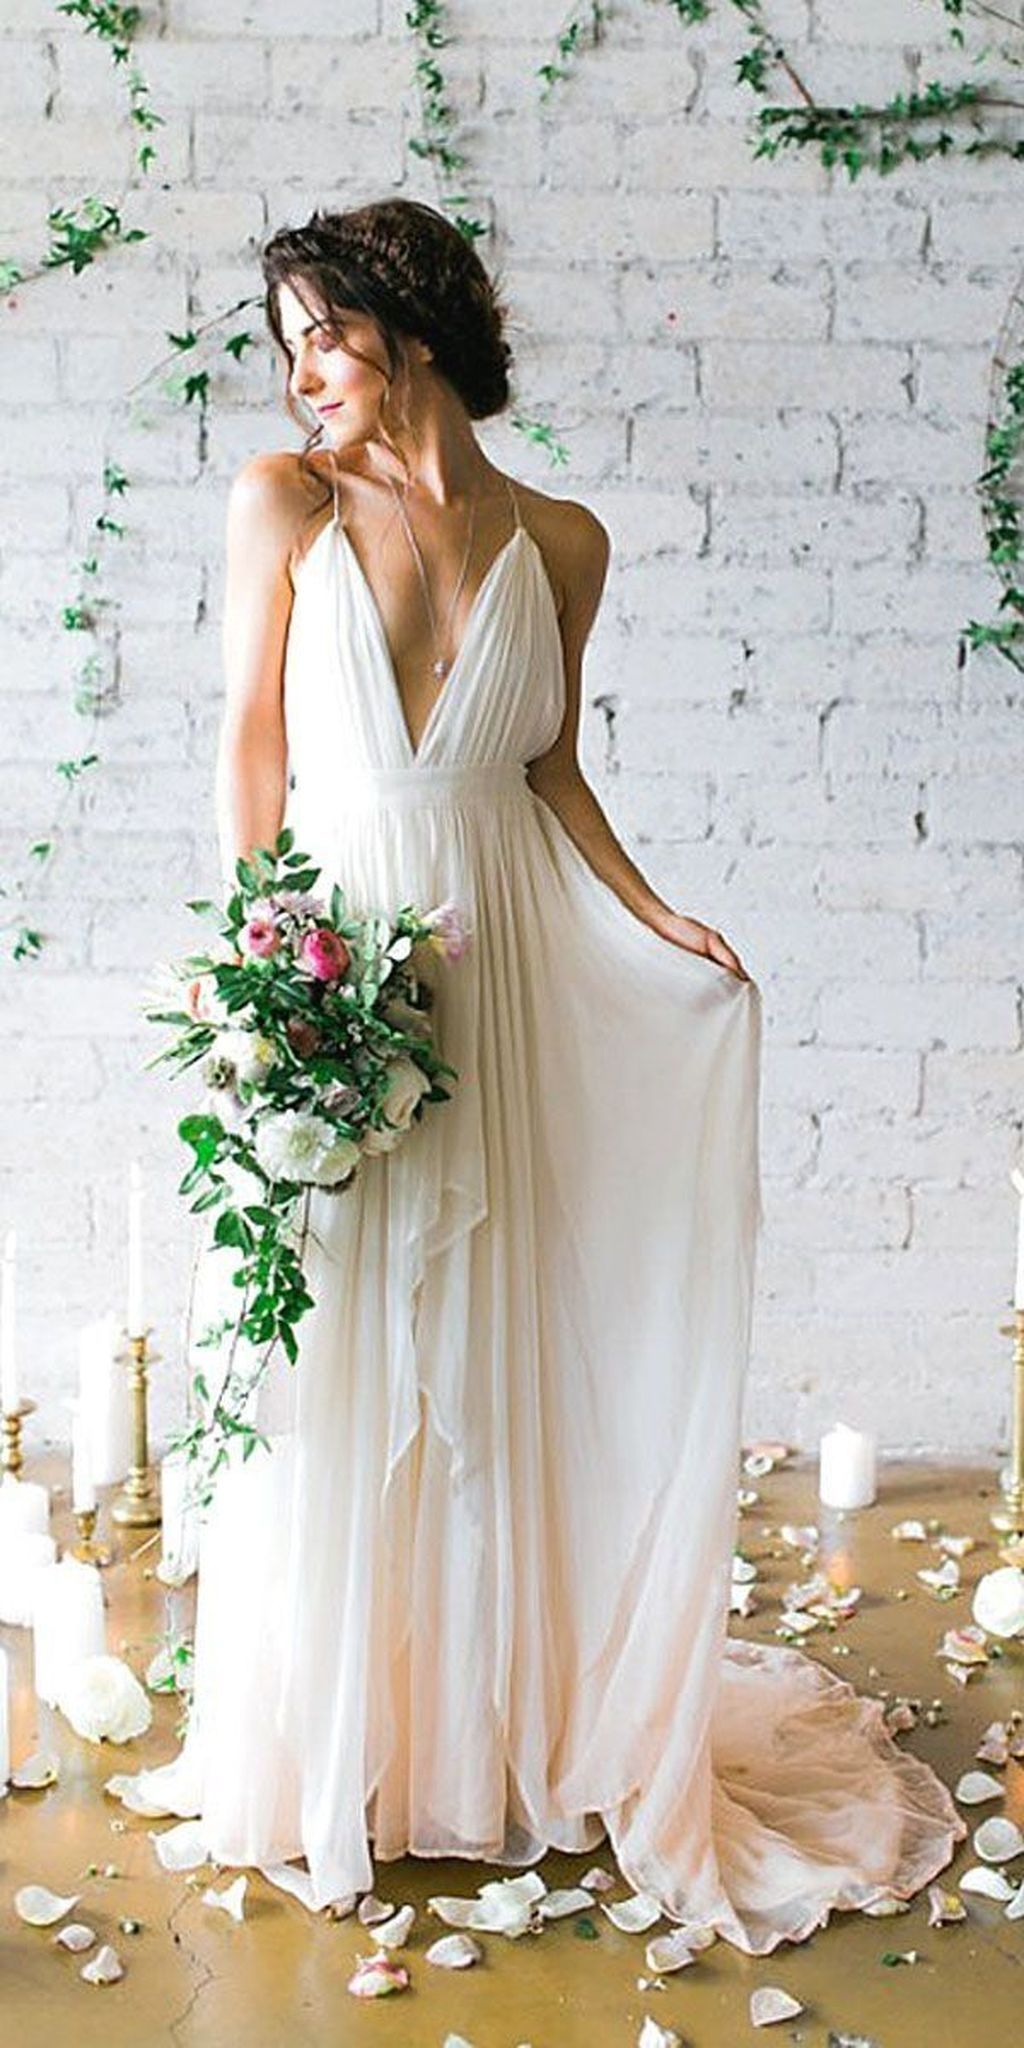 Best wedding dresses aliexpress   Adorable Bohemian Wedding Dress Ideas To Makes You Look Stunning